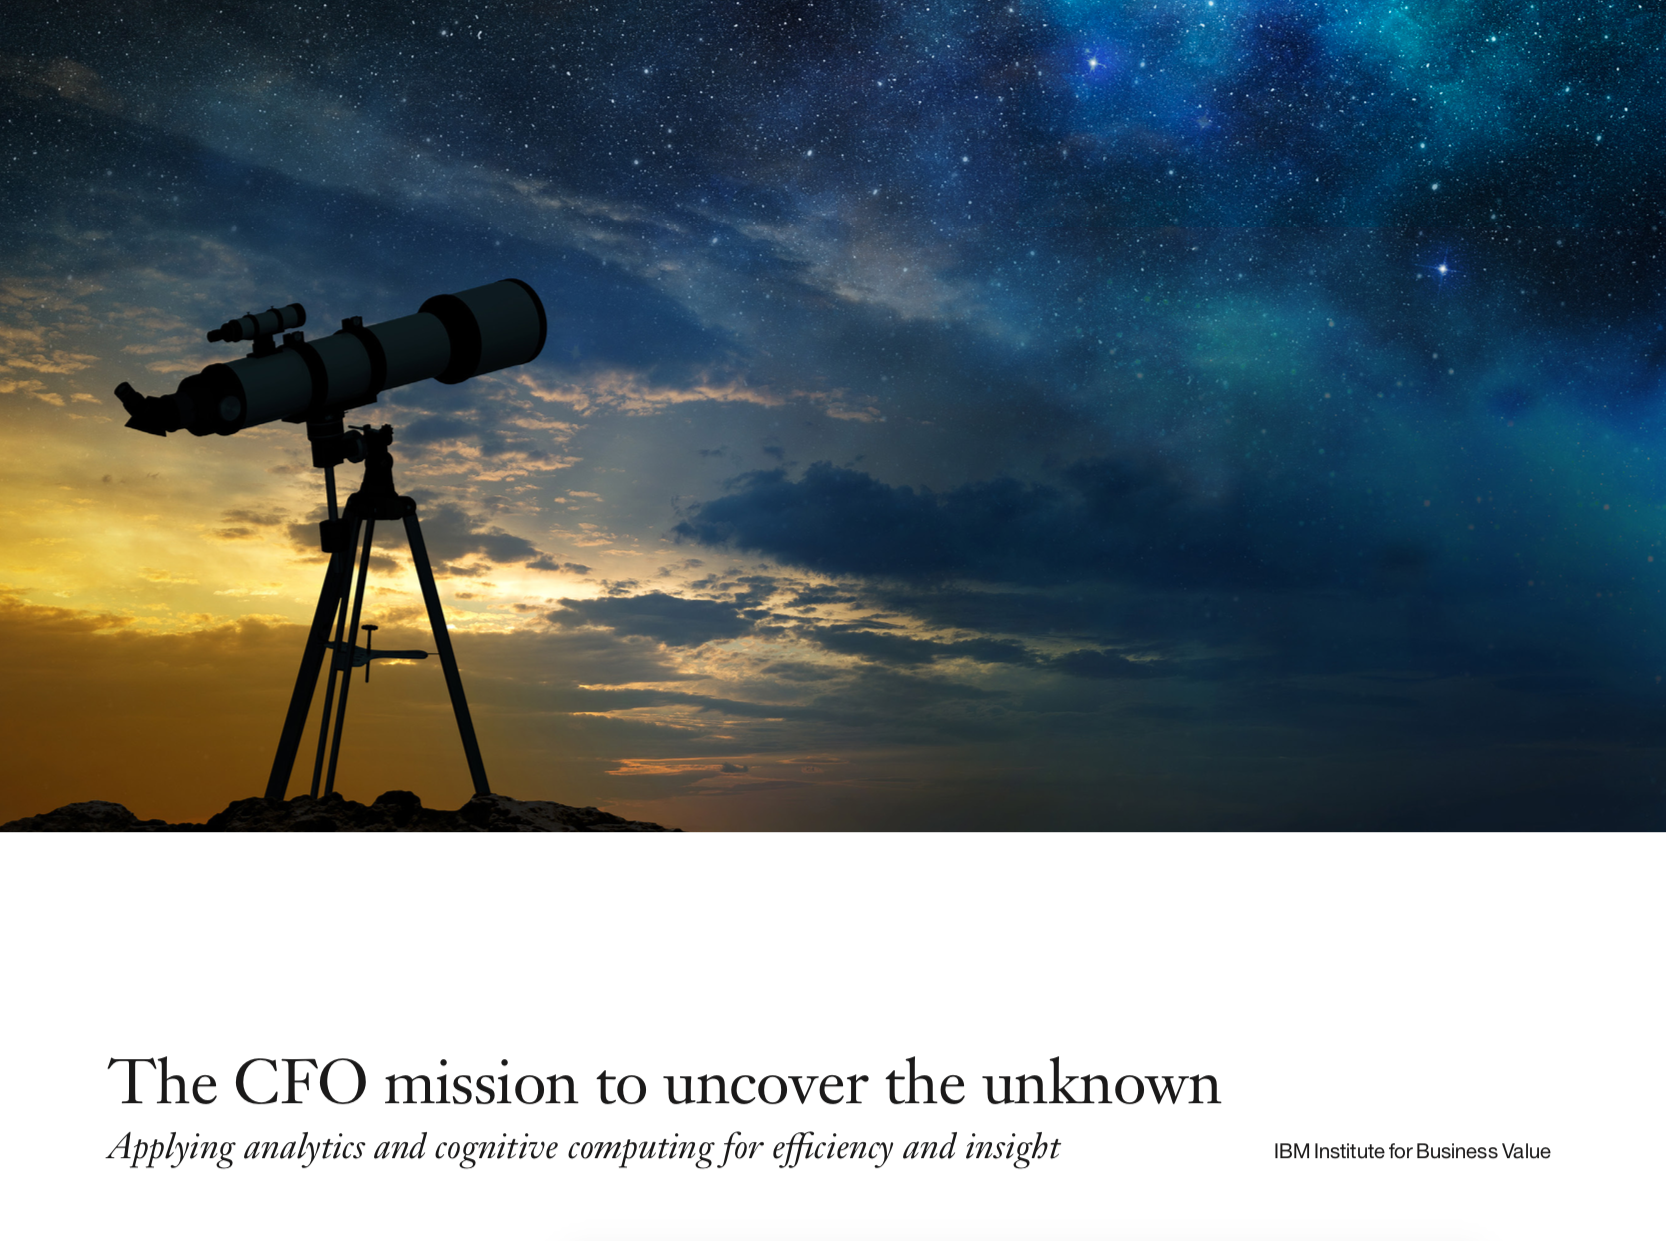 The CFO mission to uncover the unknown